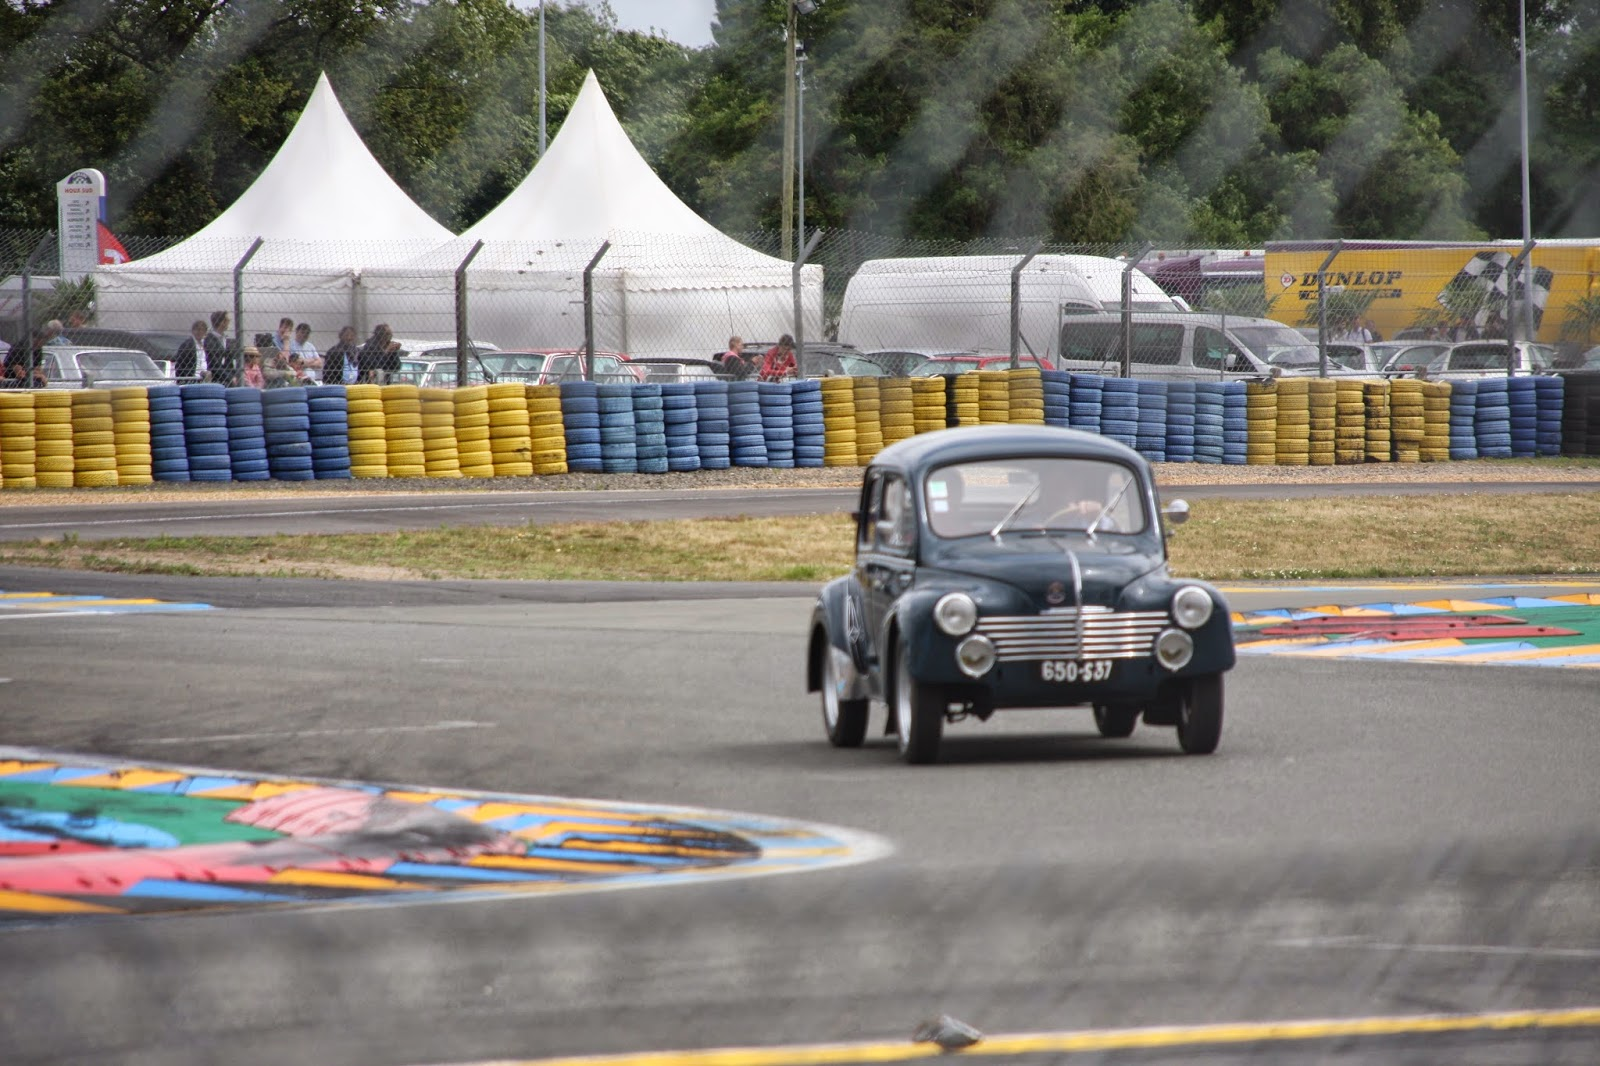 4cv au 24h du mans classic 2014 restauration d 39 une renault 4cv affaire de 1956. Black Bedroom Furniture Sets. Home Design Ideas